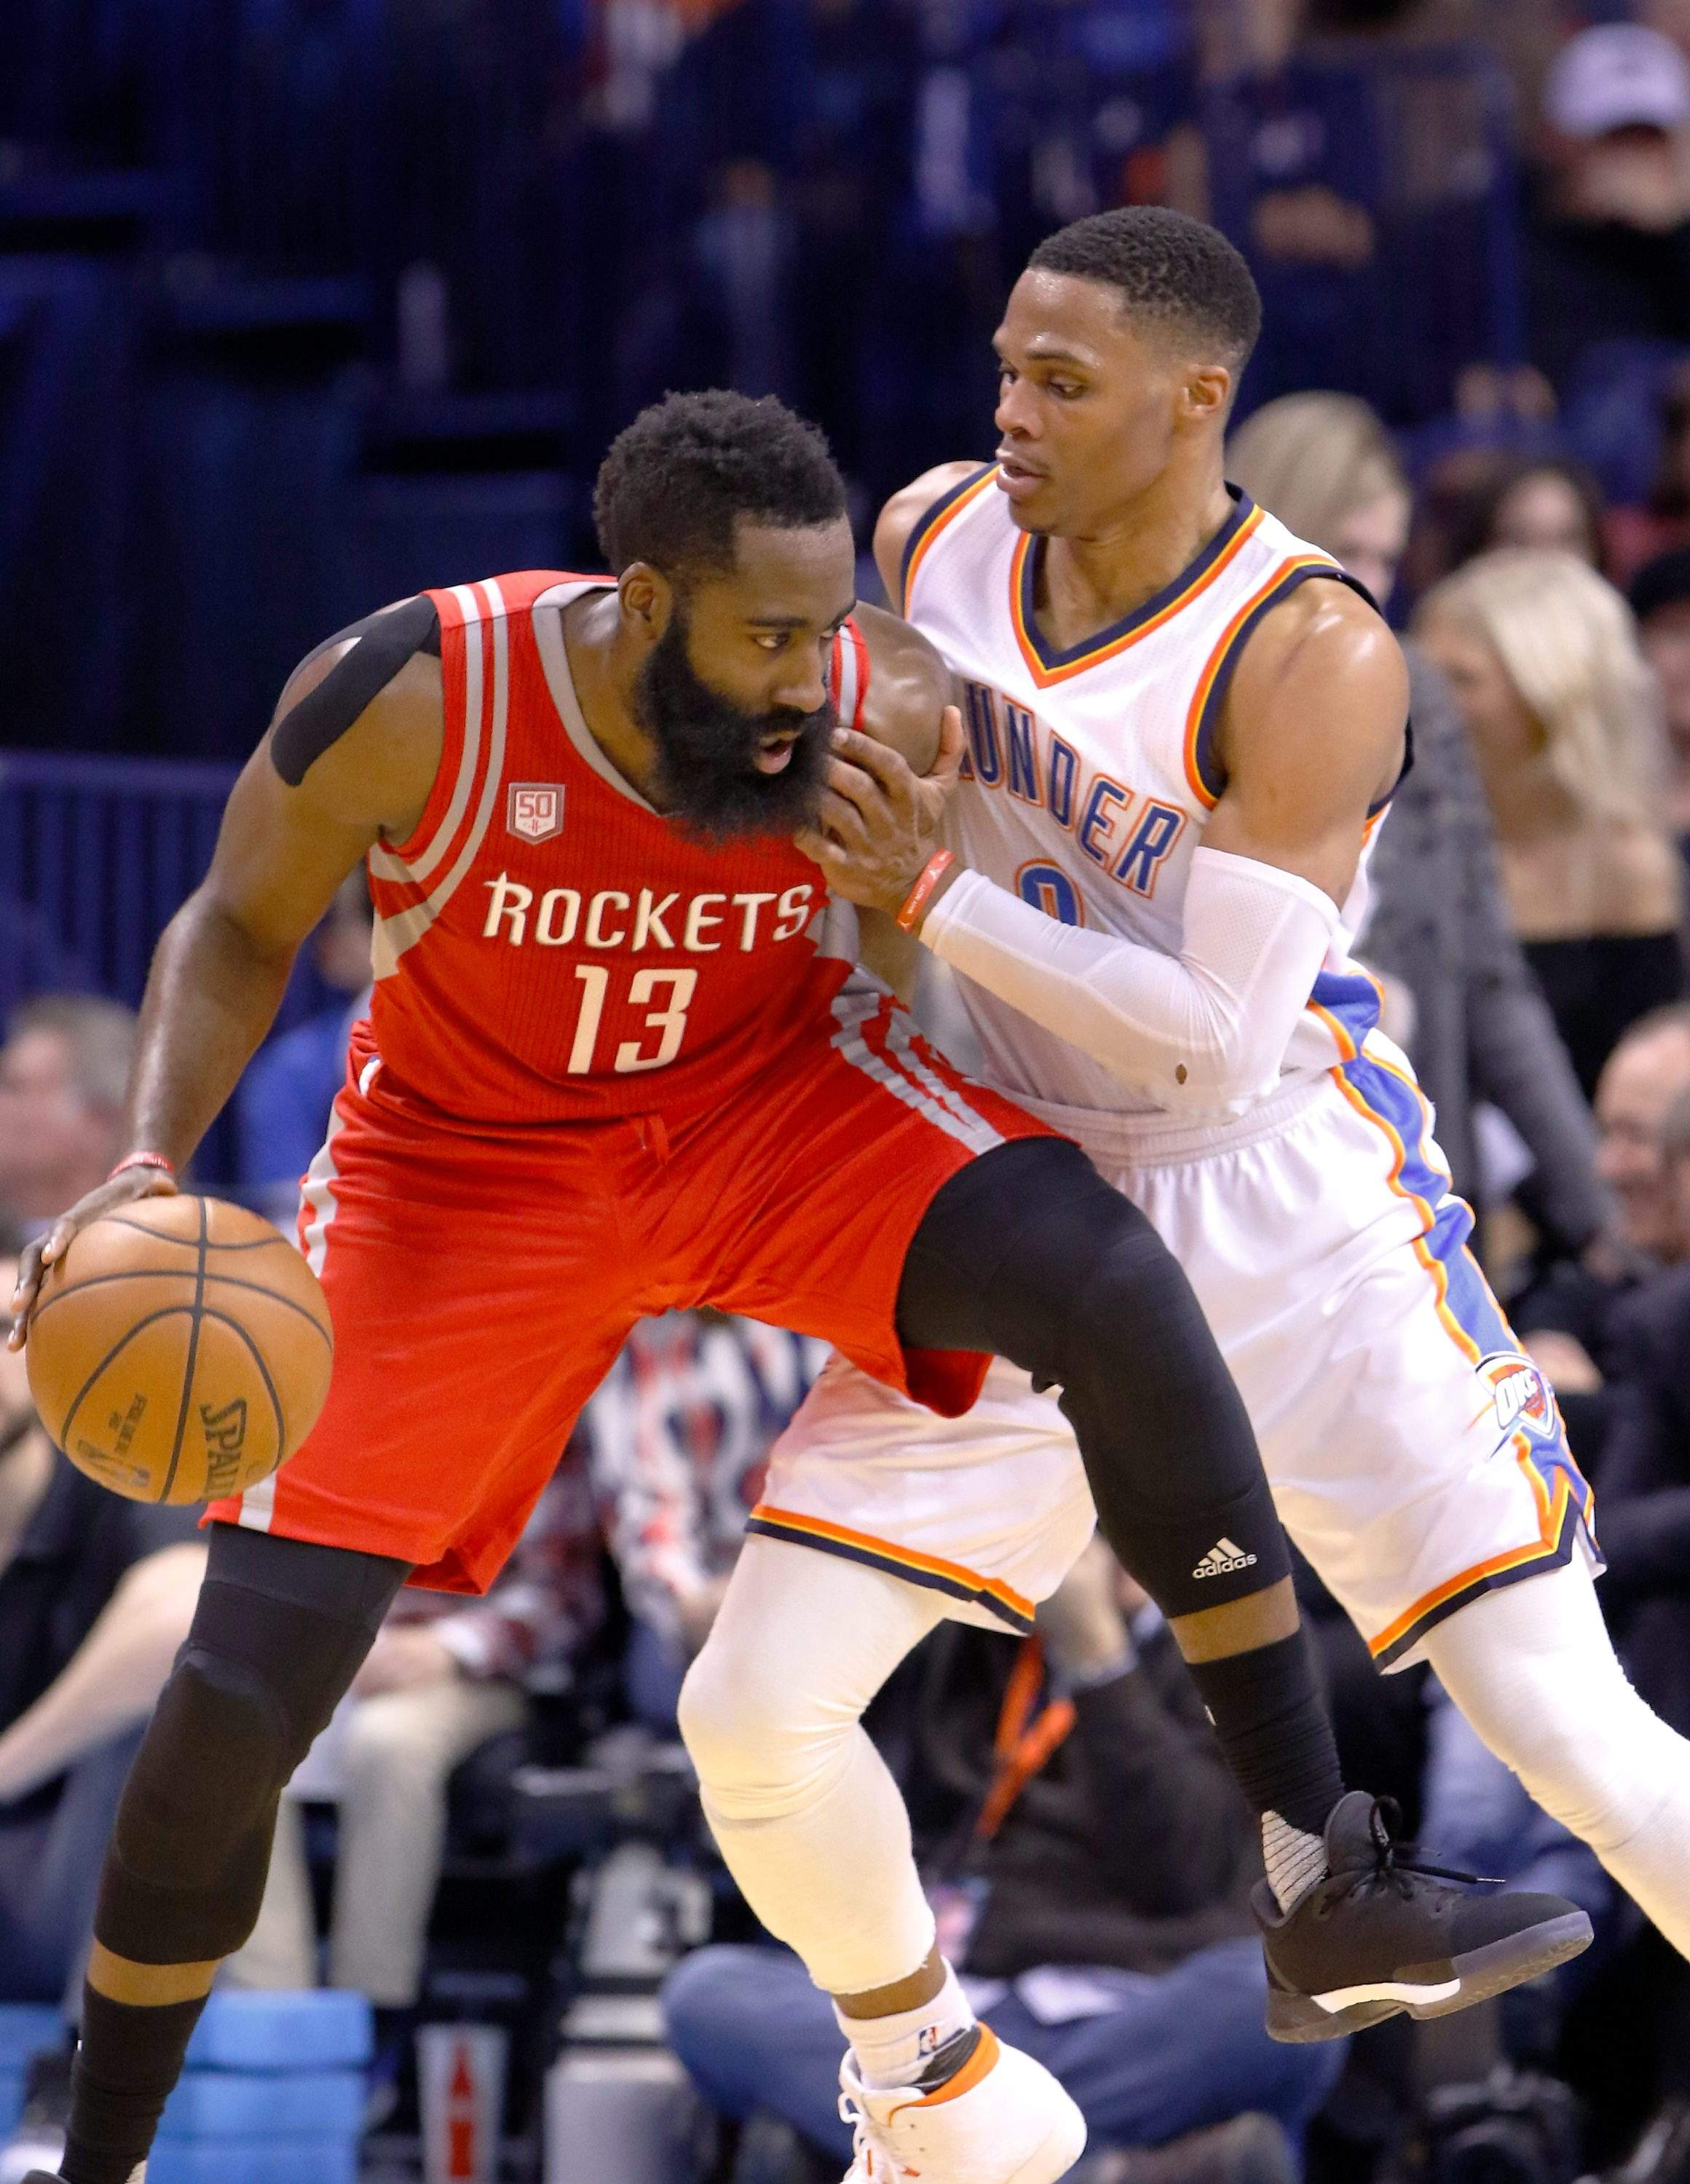 f8e58c711e7f Rusell Westbrook vs James Harden the highlight when NBA playoffs open